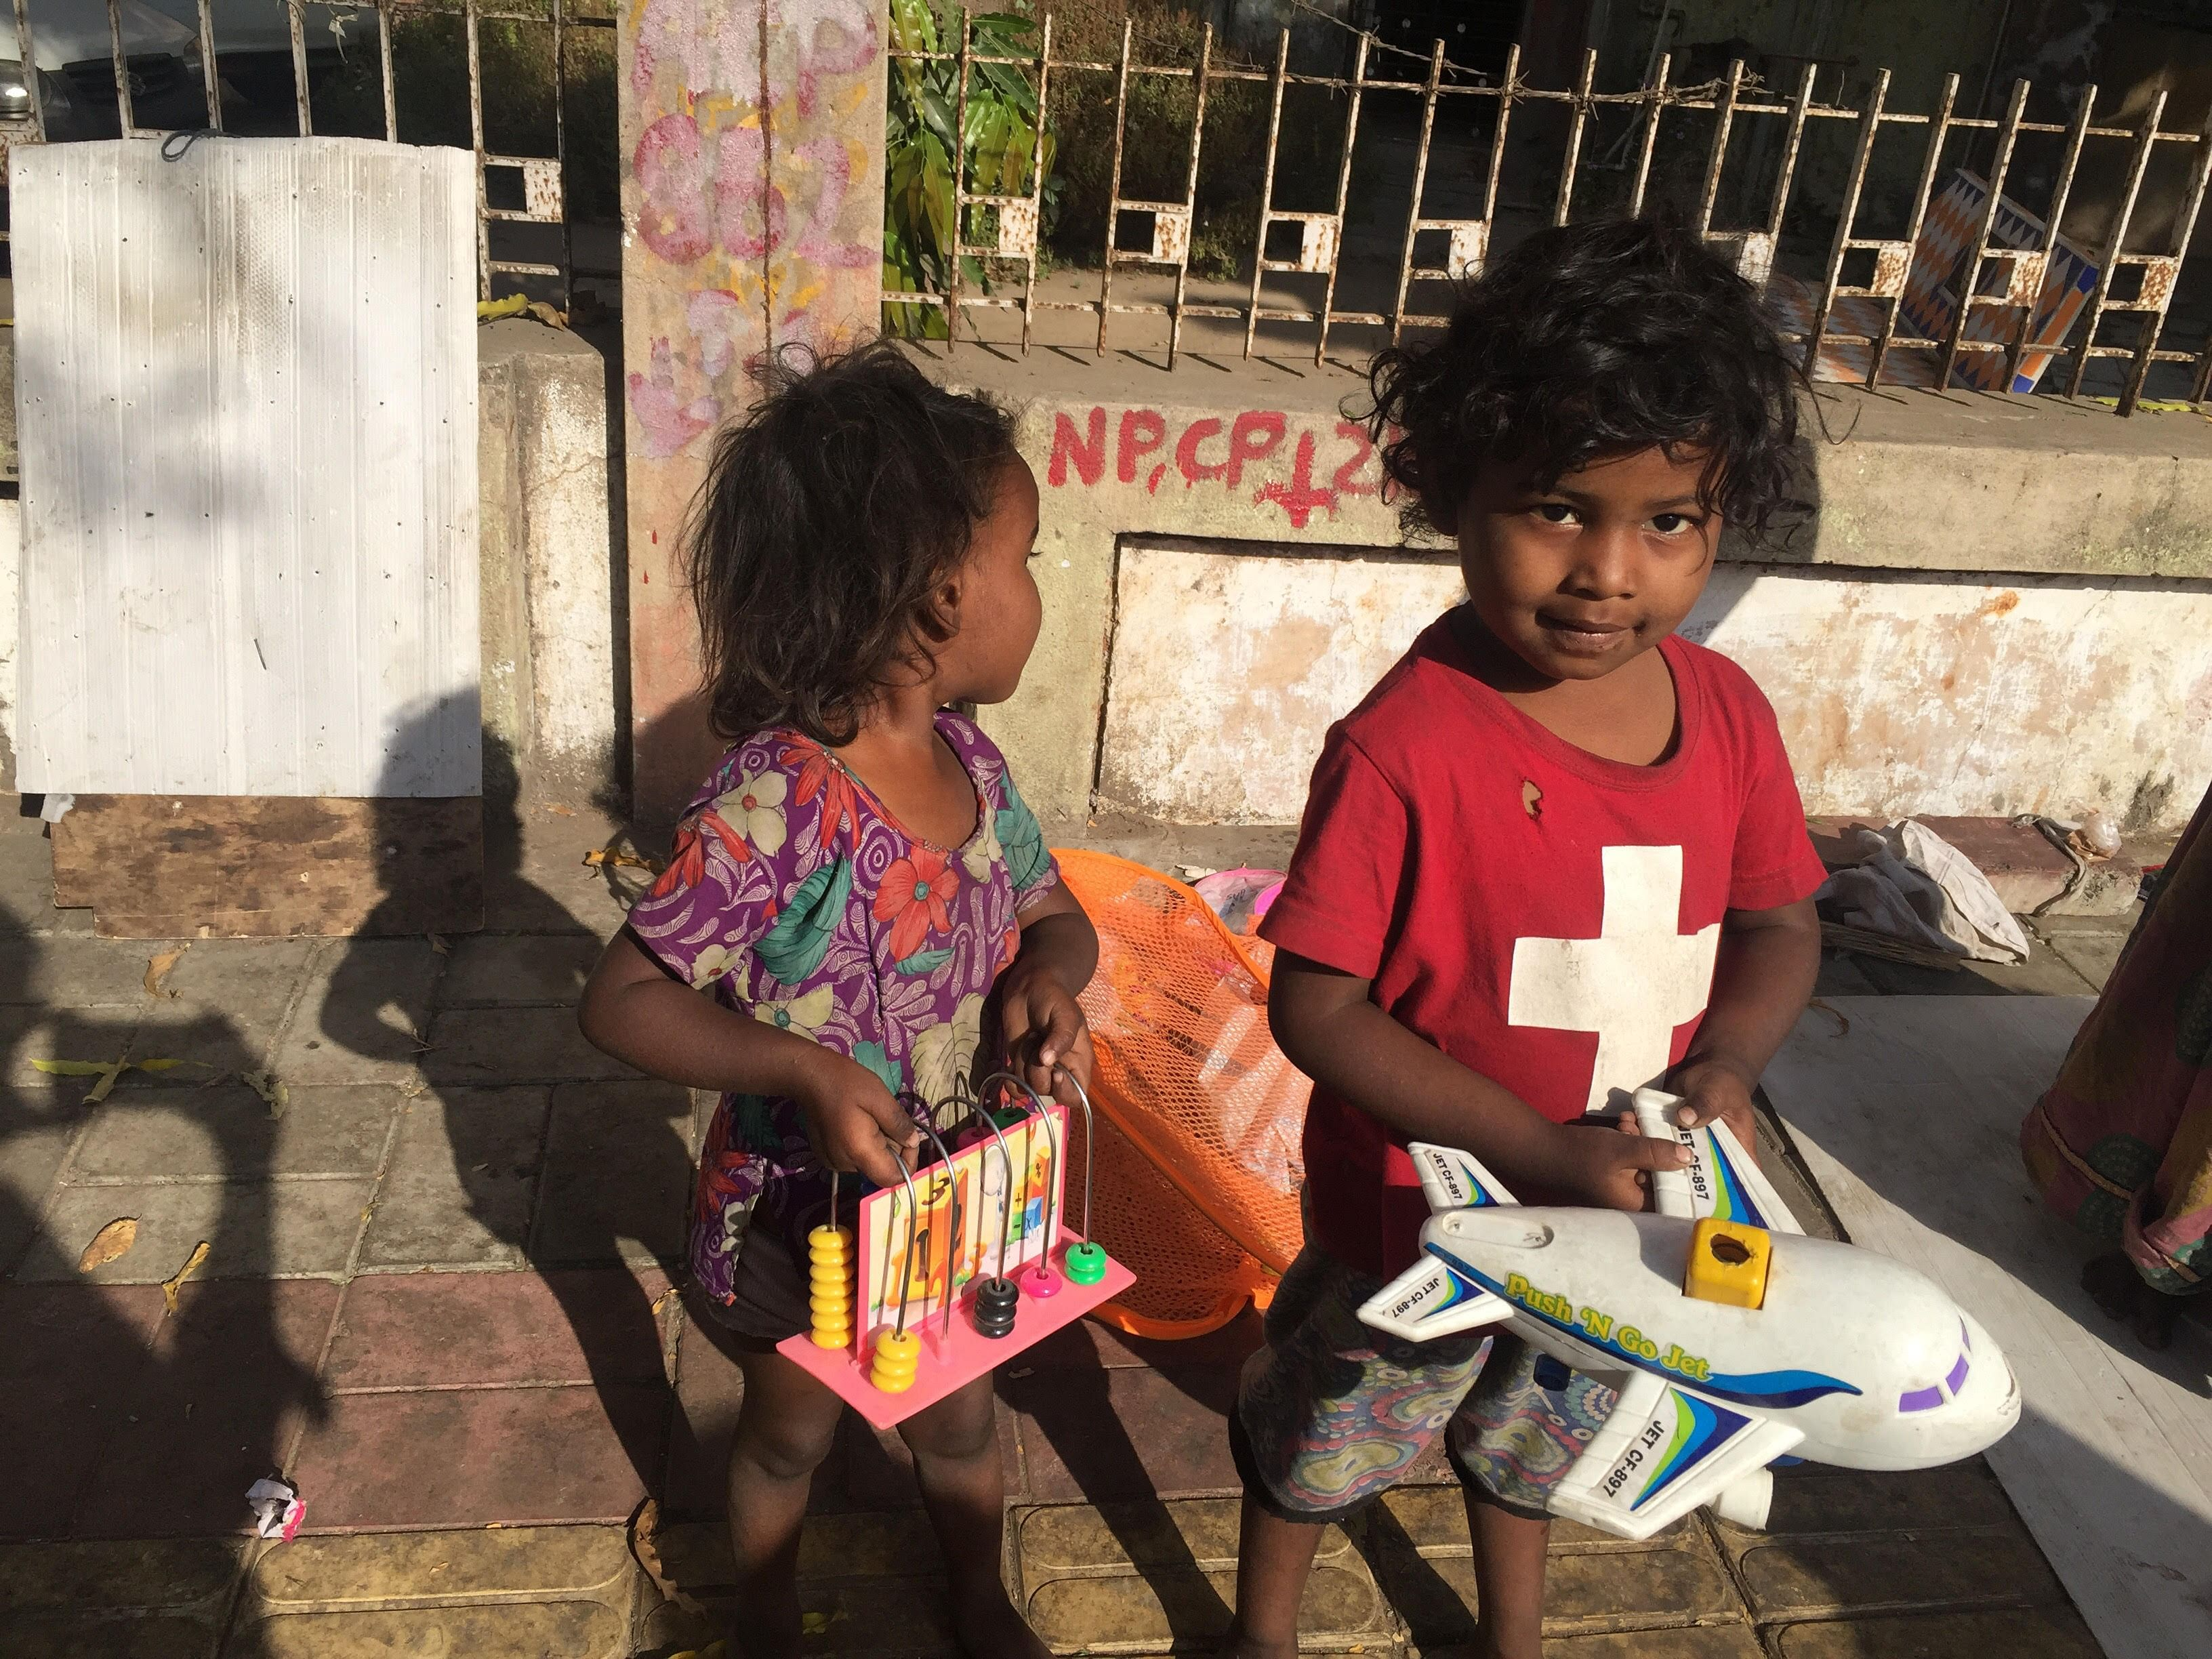 Every Week She Drives around Ahmedabad Collecting Toys from Donors